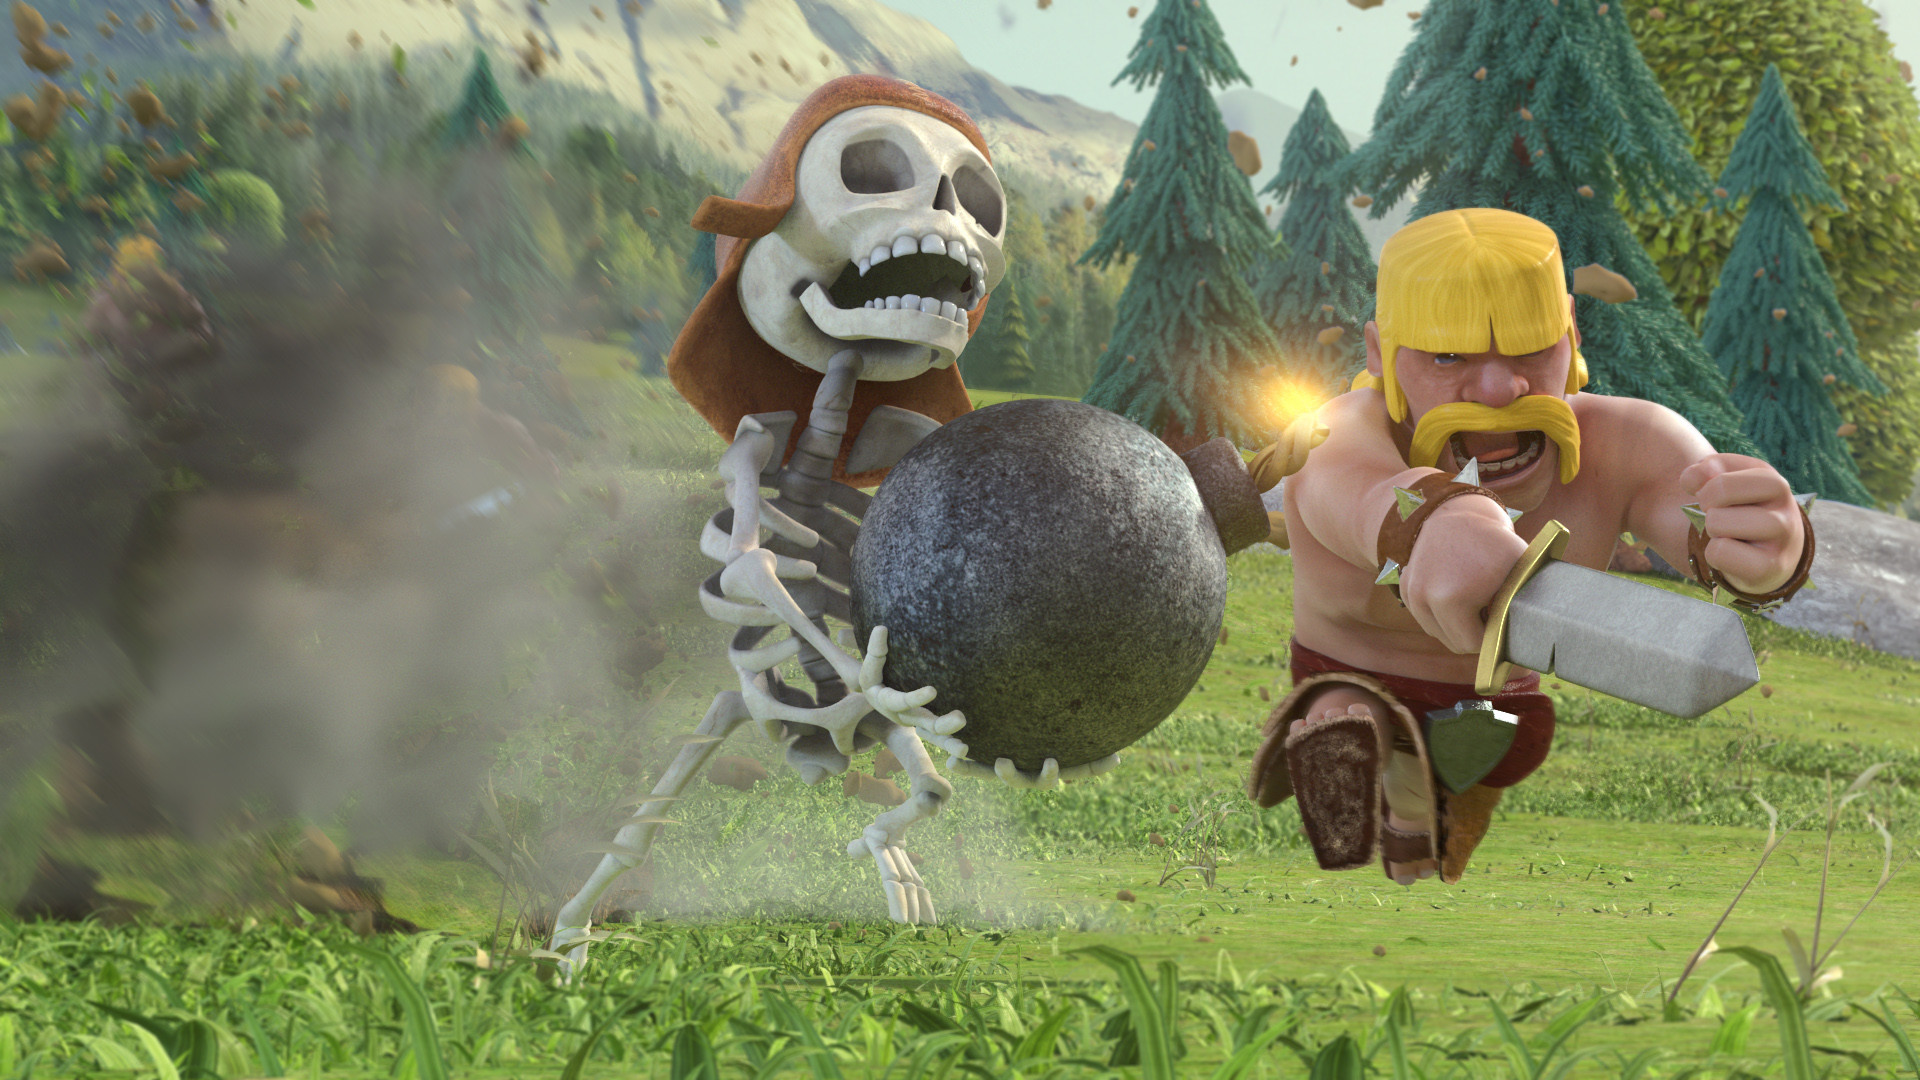 Clash of Clans – Barbarian and skeleton wallpaper